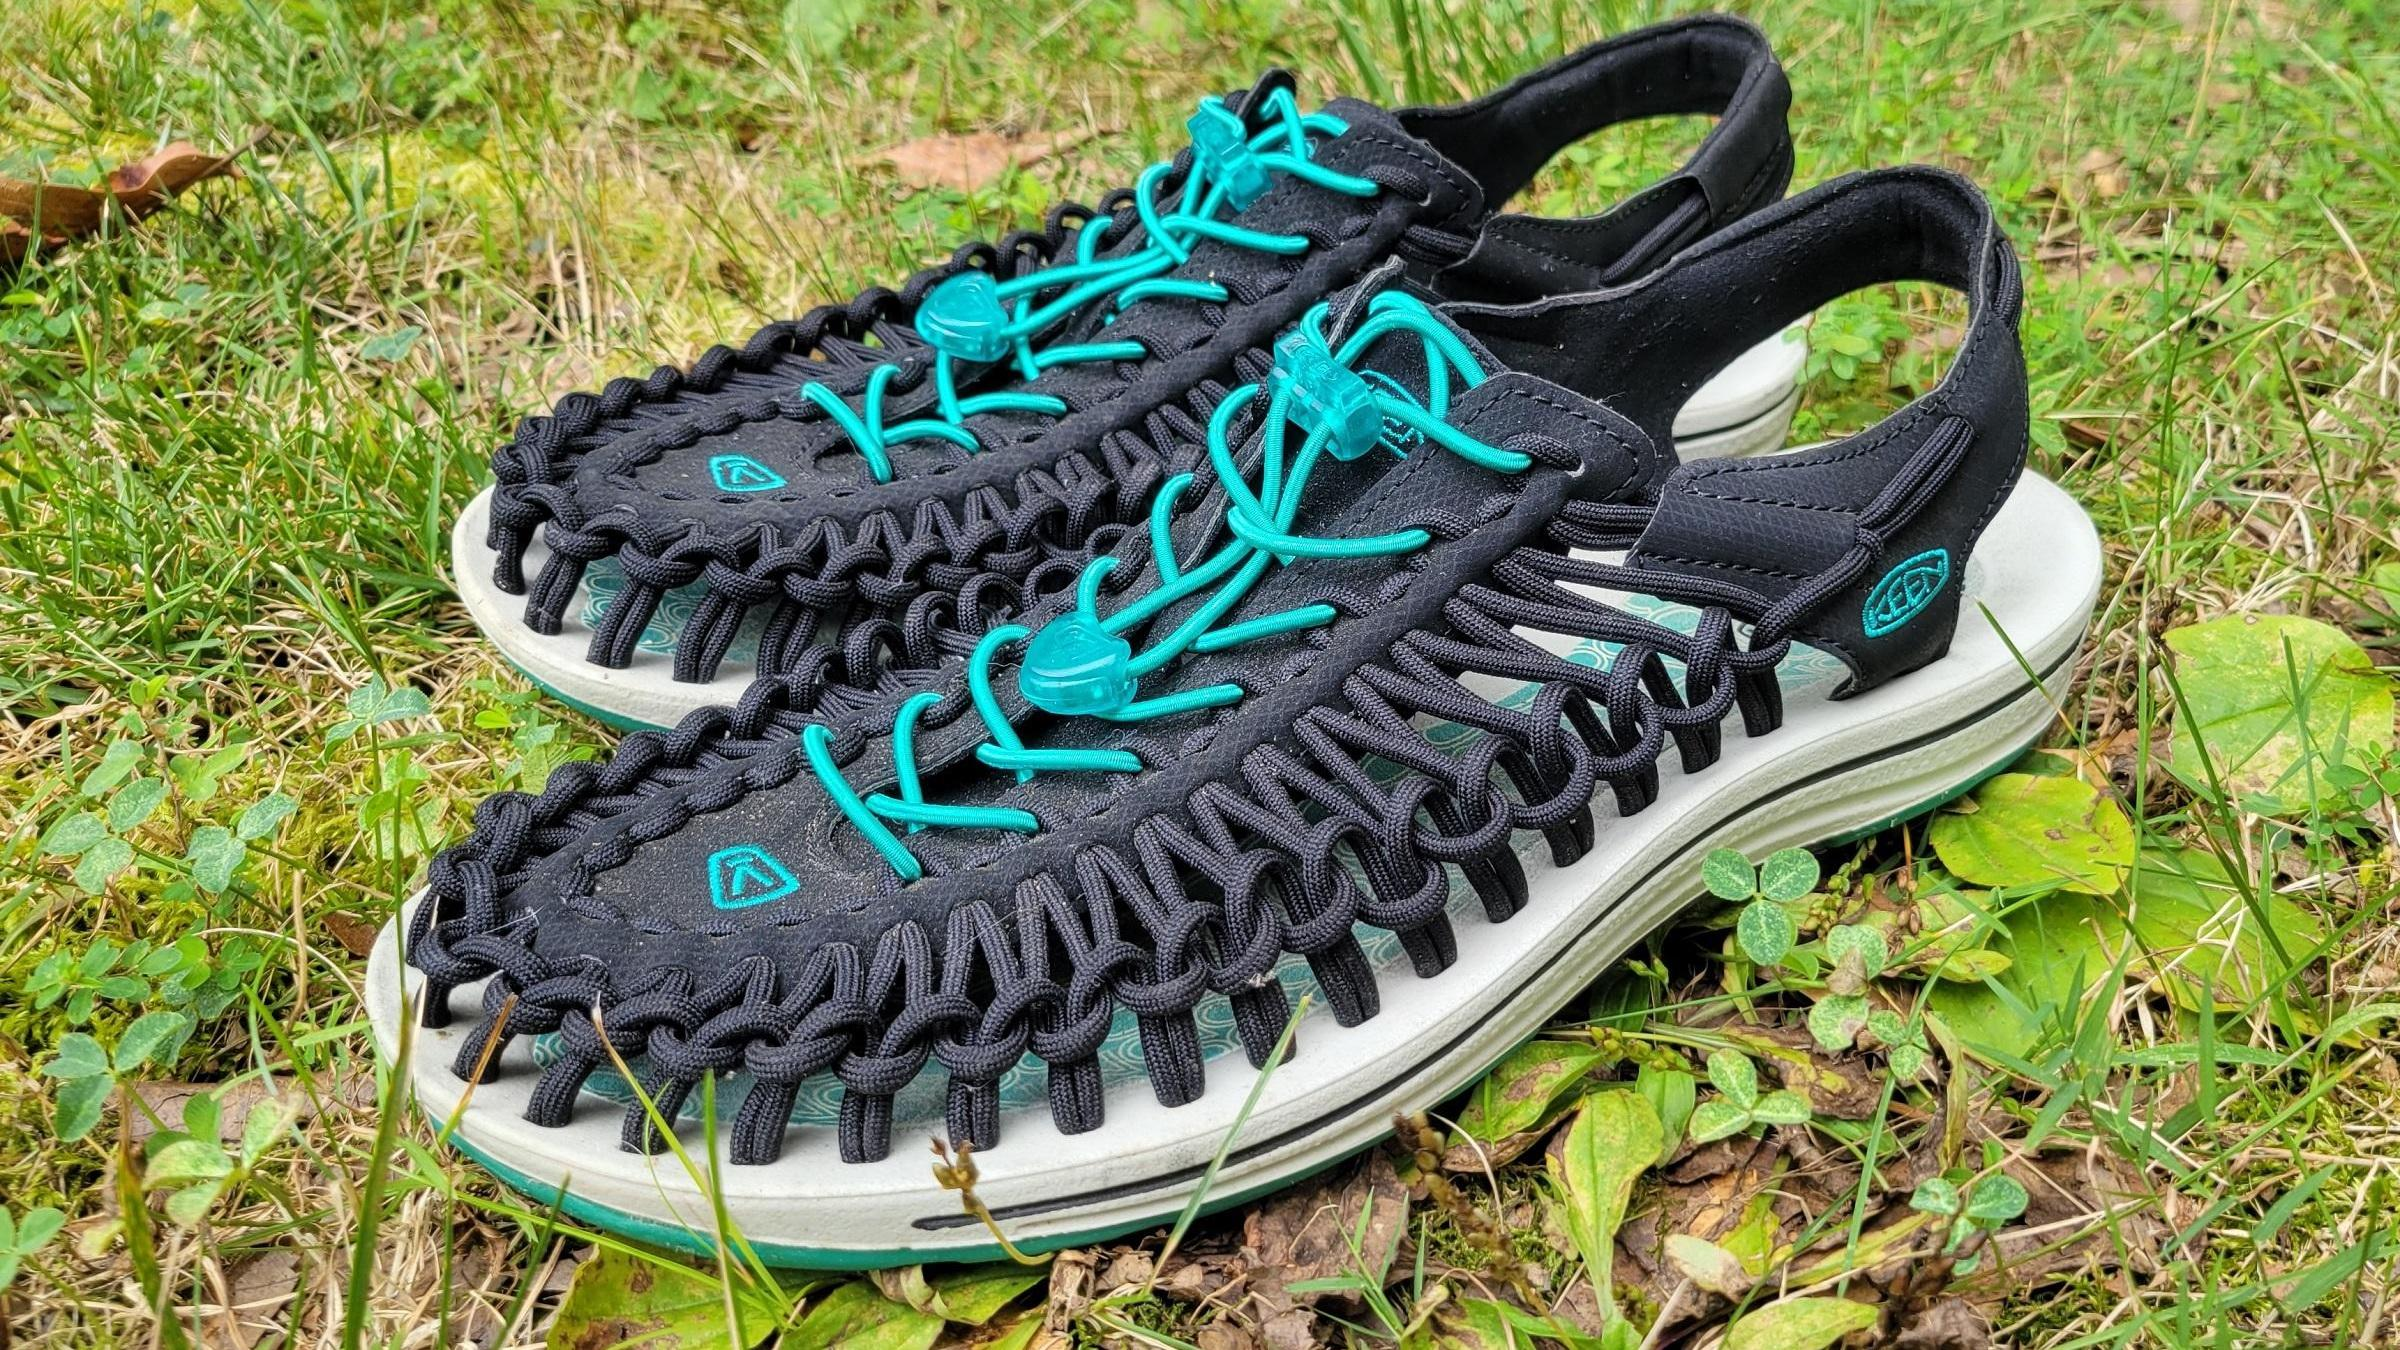 10 Best Water Hiking Sandals in 2021